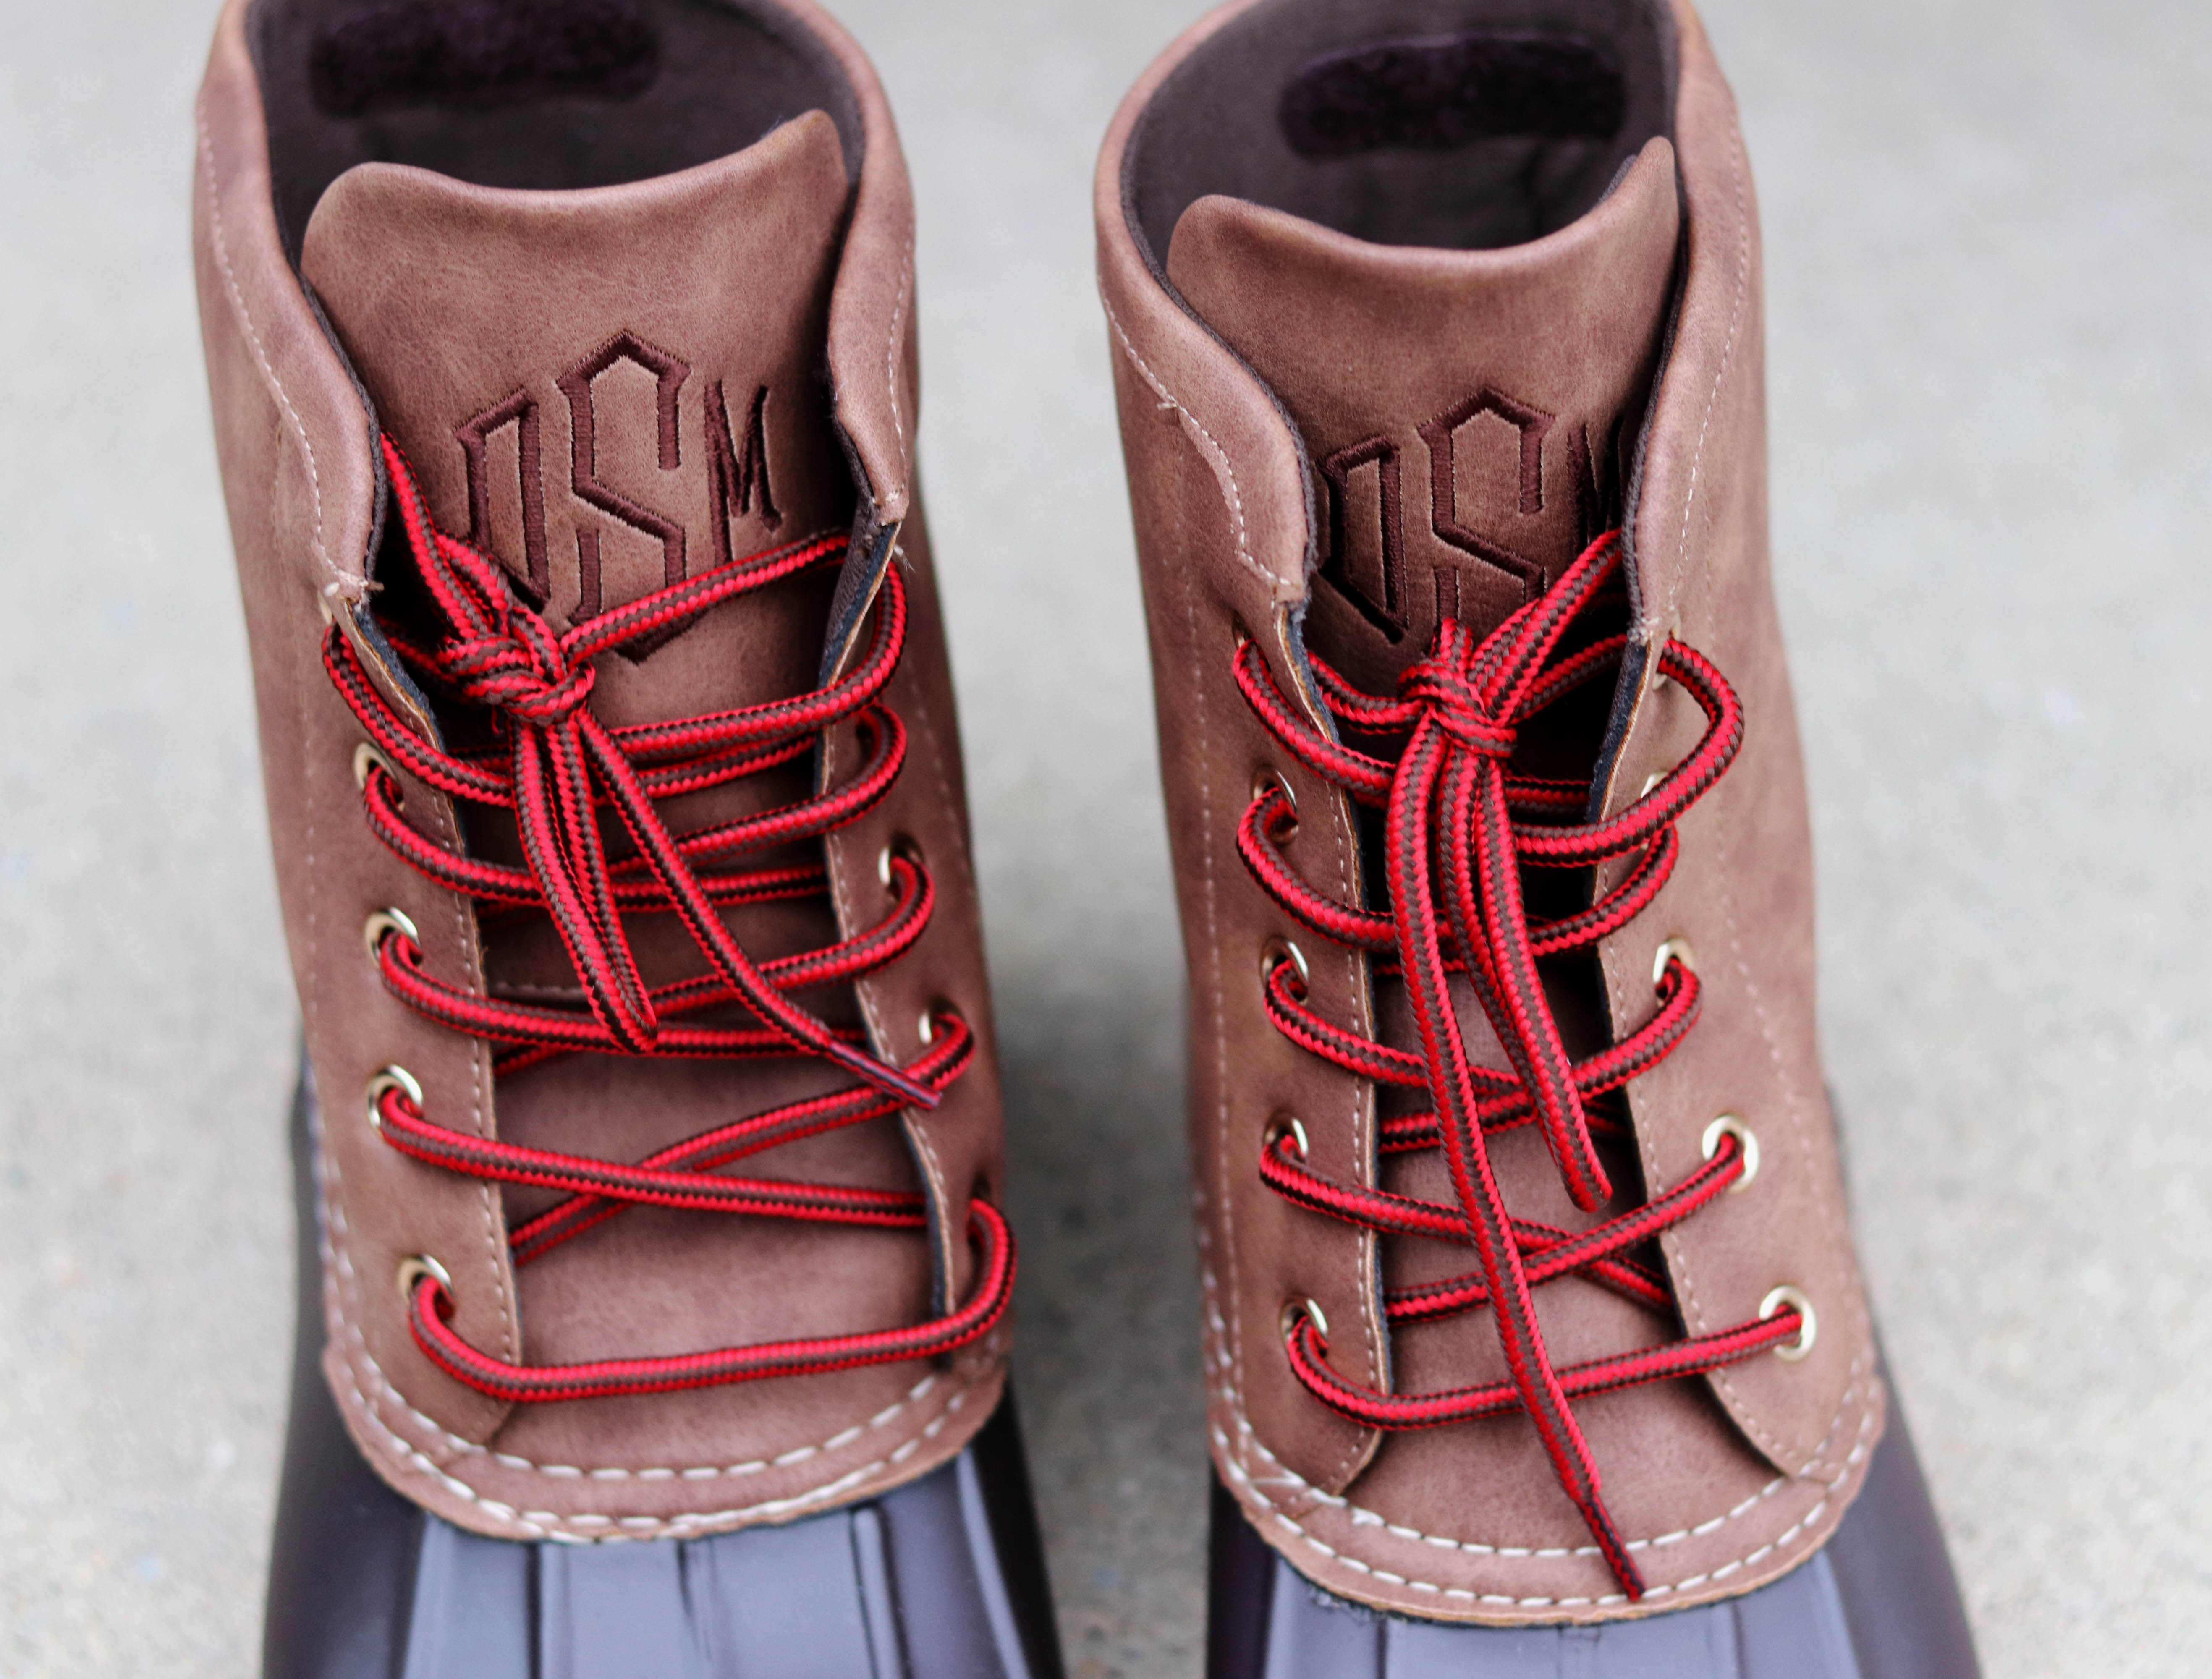 960e5b111cc2e Marley Lilly Duck Boots | Lulu L'amour